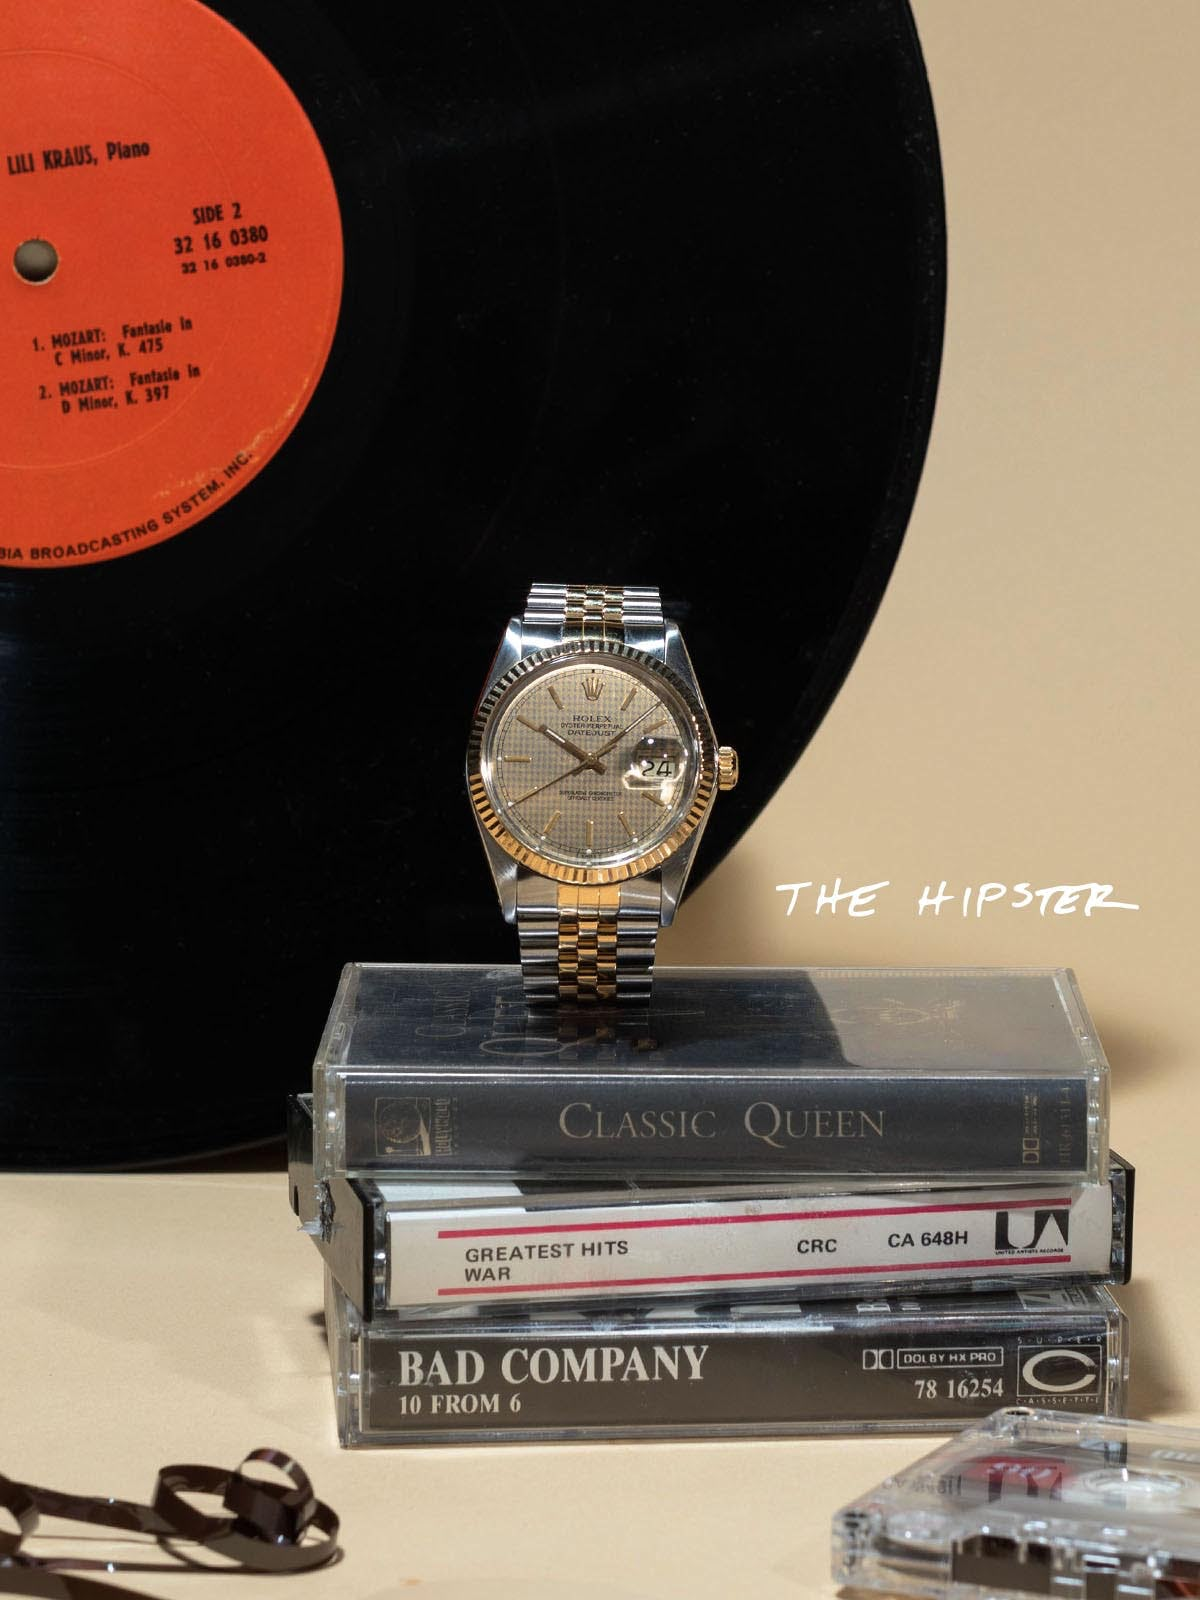 FirstRolex-Datejust-The Hipster